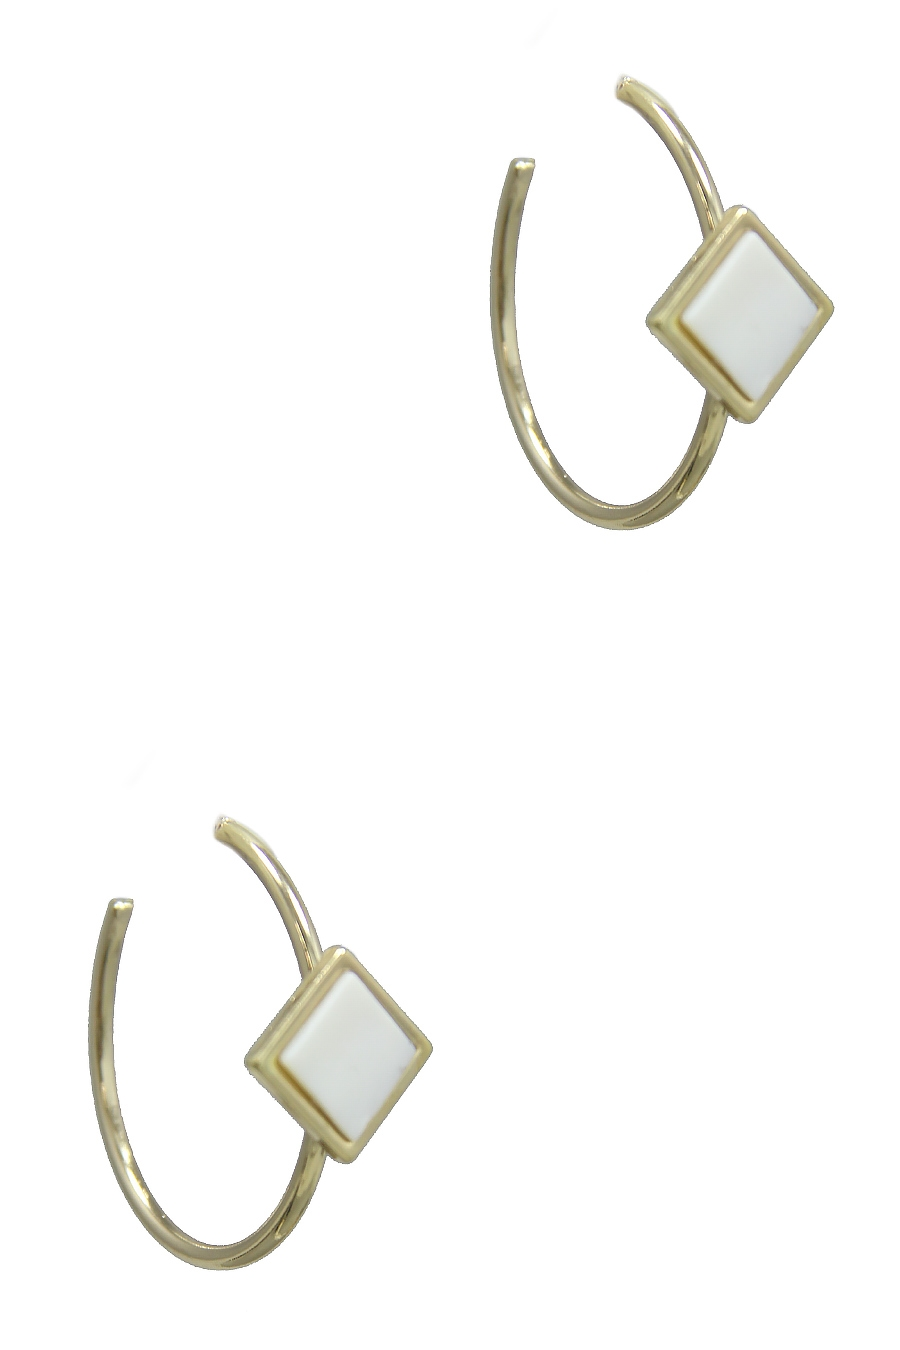 DIAMOND SHAPE HOOP EARRING - orangeshine.com